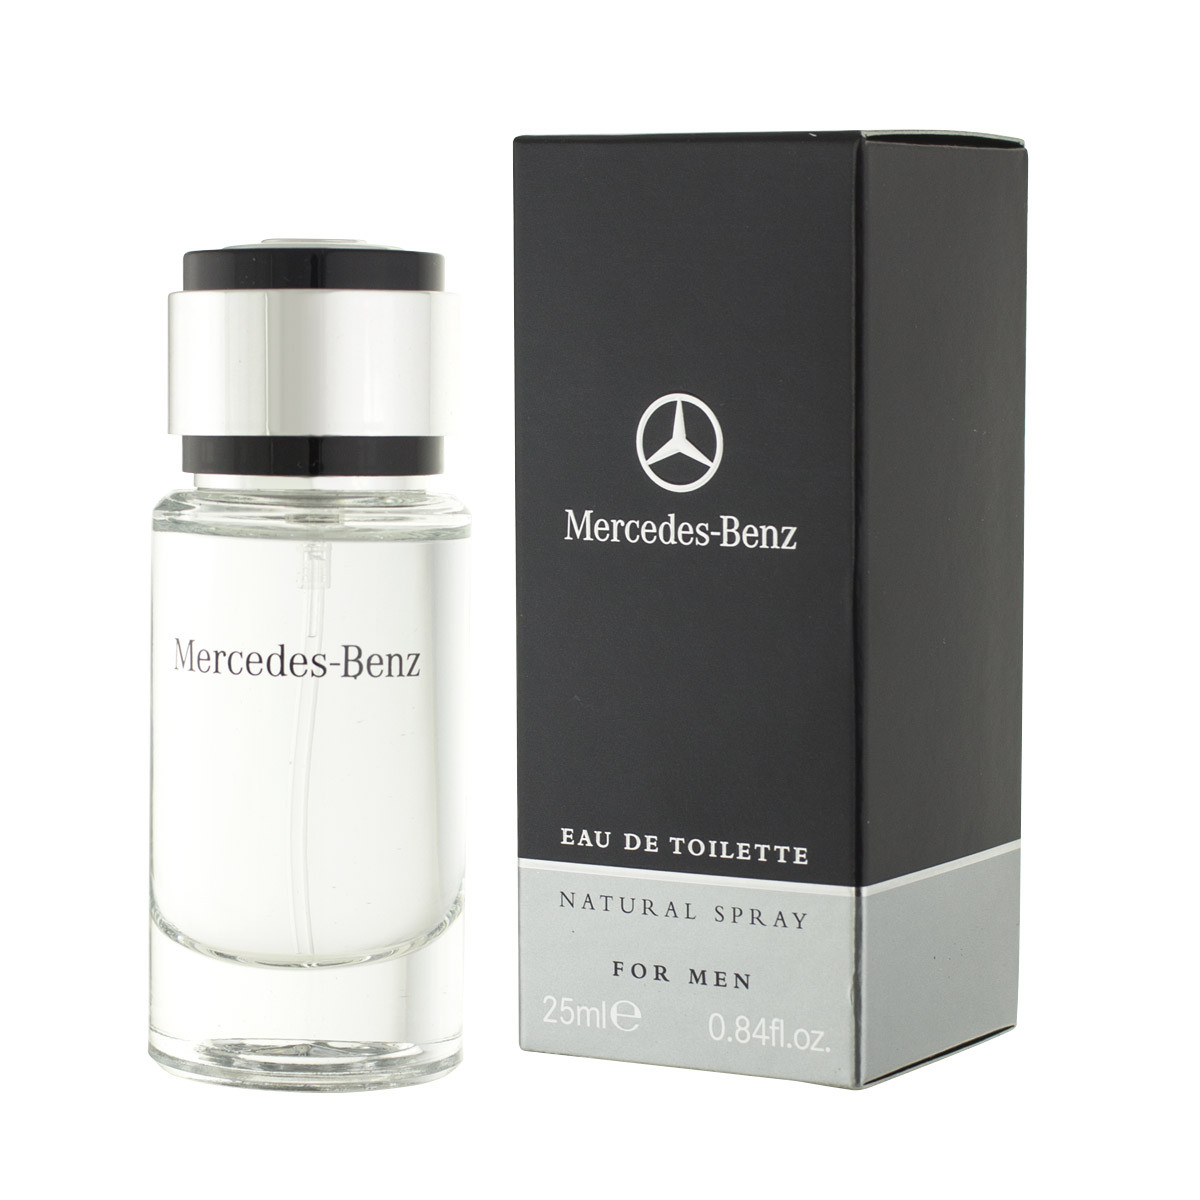 mercedes benz mercedes benz eau de toilette 25 ml man. Black Bedroom Furniture Sets. Home Design Ideas